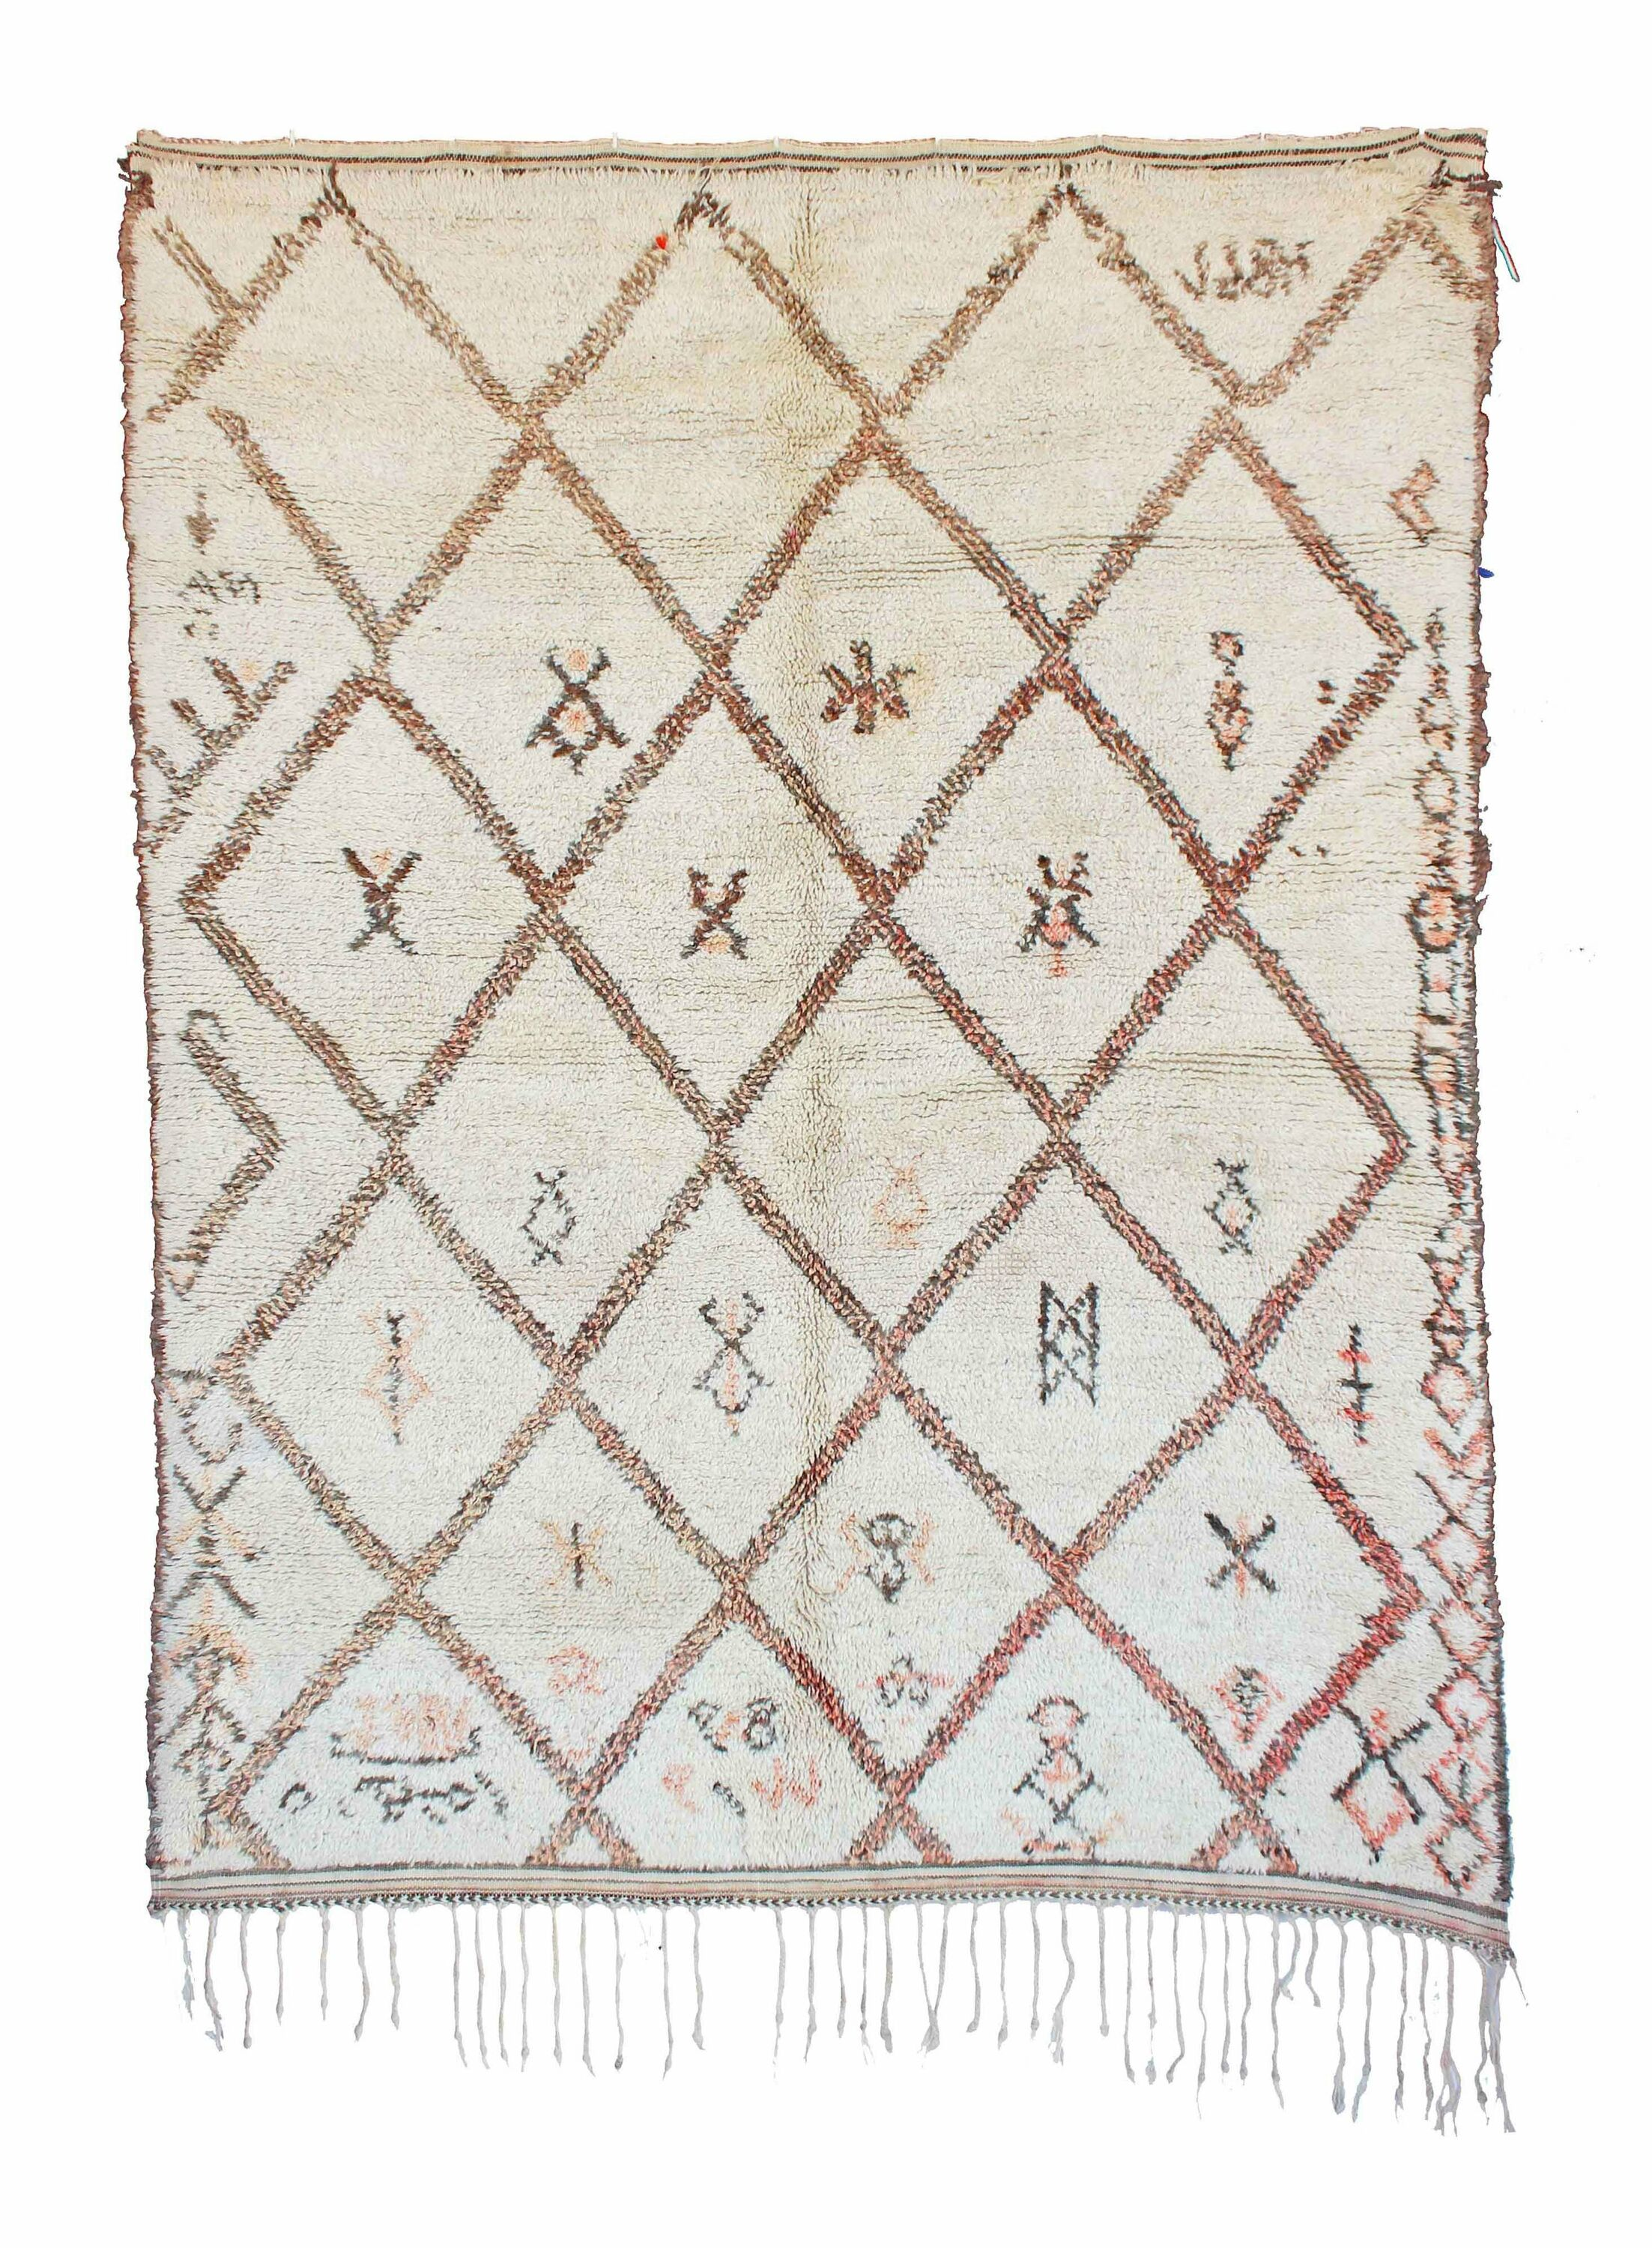 Beni Ourain Vintage Moroccan Hand Knotted Wool Cream Area Rug